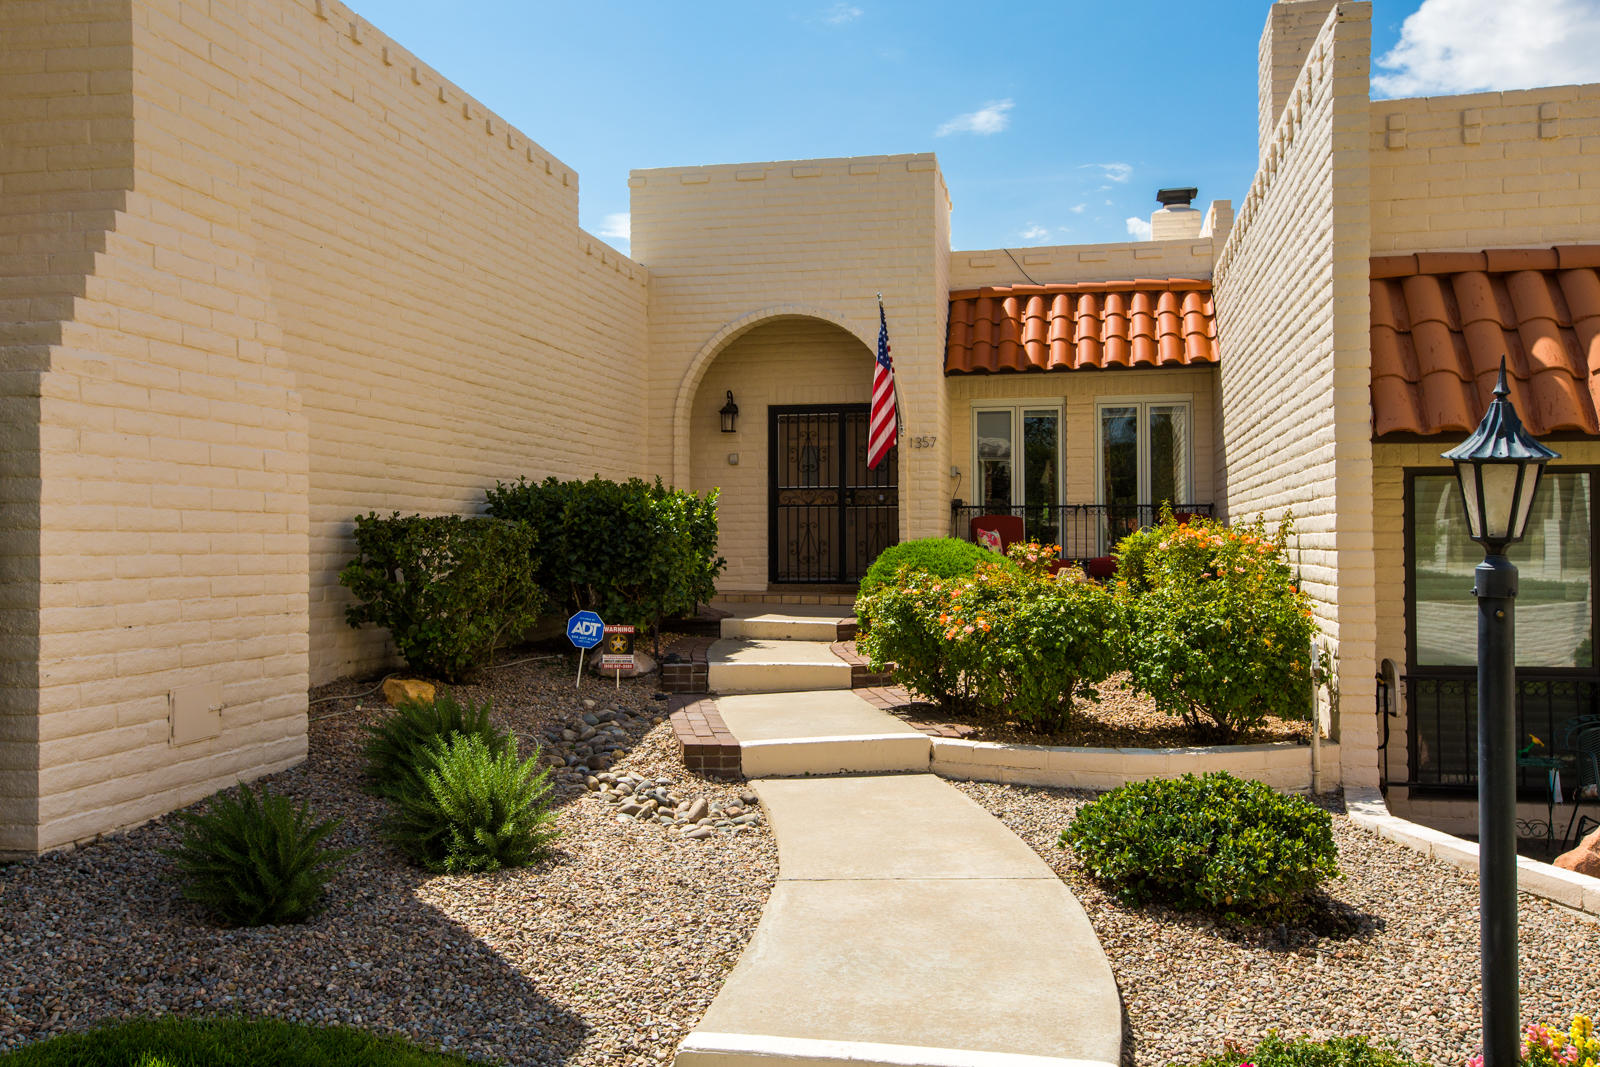 Beautiful Single-Story Townhouse located in Villa Serena Townhomes, a Resort-like community that includes pool, clubhouse & manicured landscape. Villa Serena is in Four Hills Village Area with a Golf course and Country Club! This home has an Amazing Floorplan that includes both Formal Living & Formal Dining with a Kiva Fireplace, Den with Bar, Hard Wood Floors w/ Beam Ceilings, Private Atrium of Second Bedroom, & Private Courtyard. The home has been Newly Painted, the Master Shower has been Redone, New Garage door opener, New water heater. Private Backyard  Courtyard .  A Great Place to Call Home!